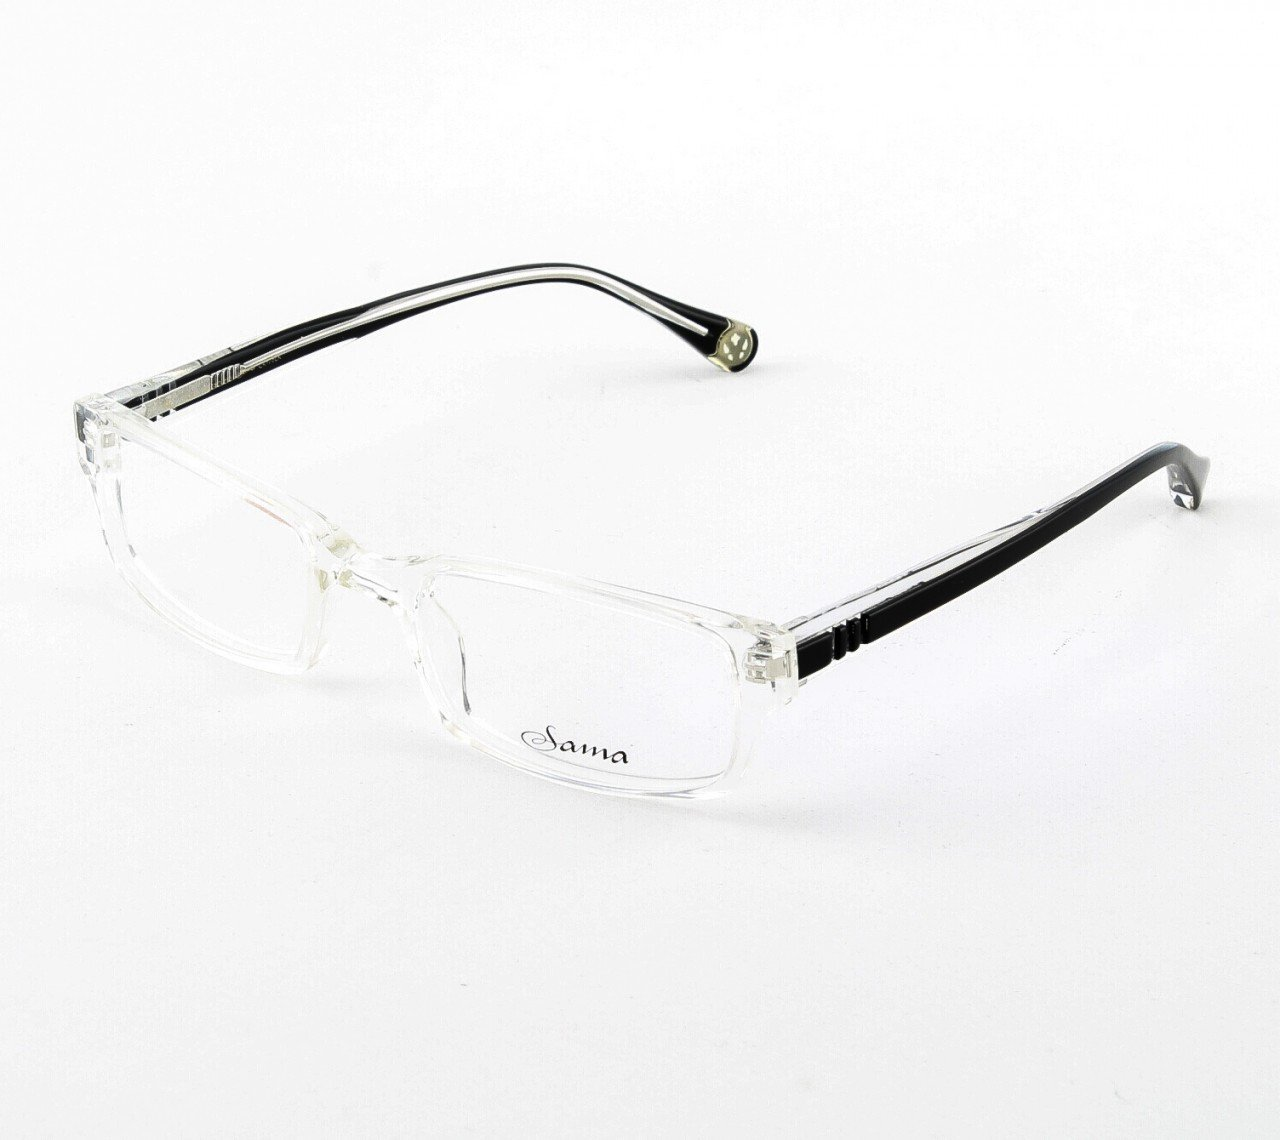 Loree Rodkin Chace Eyeglasses by Sama Col. Clear Crystal/Black with Clear Lenses